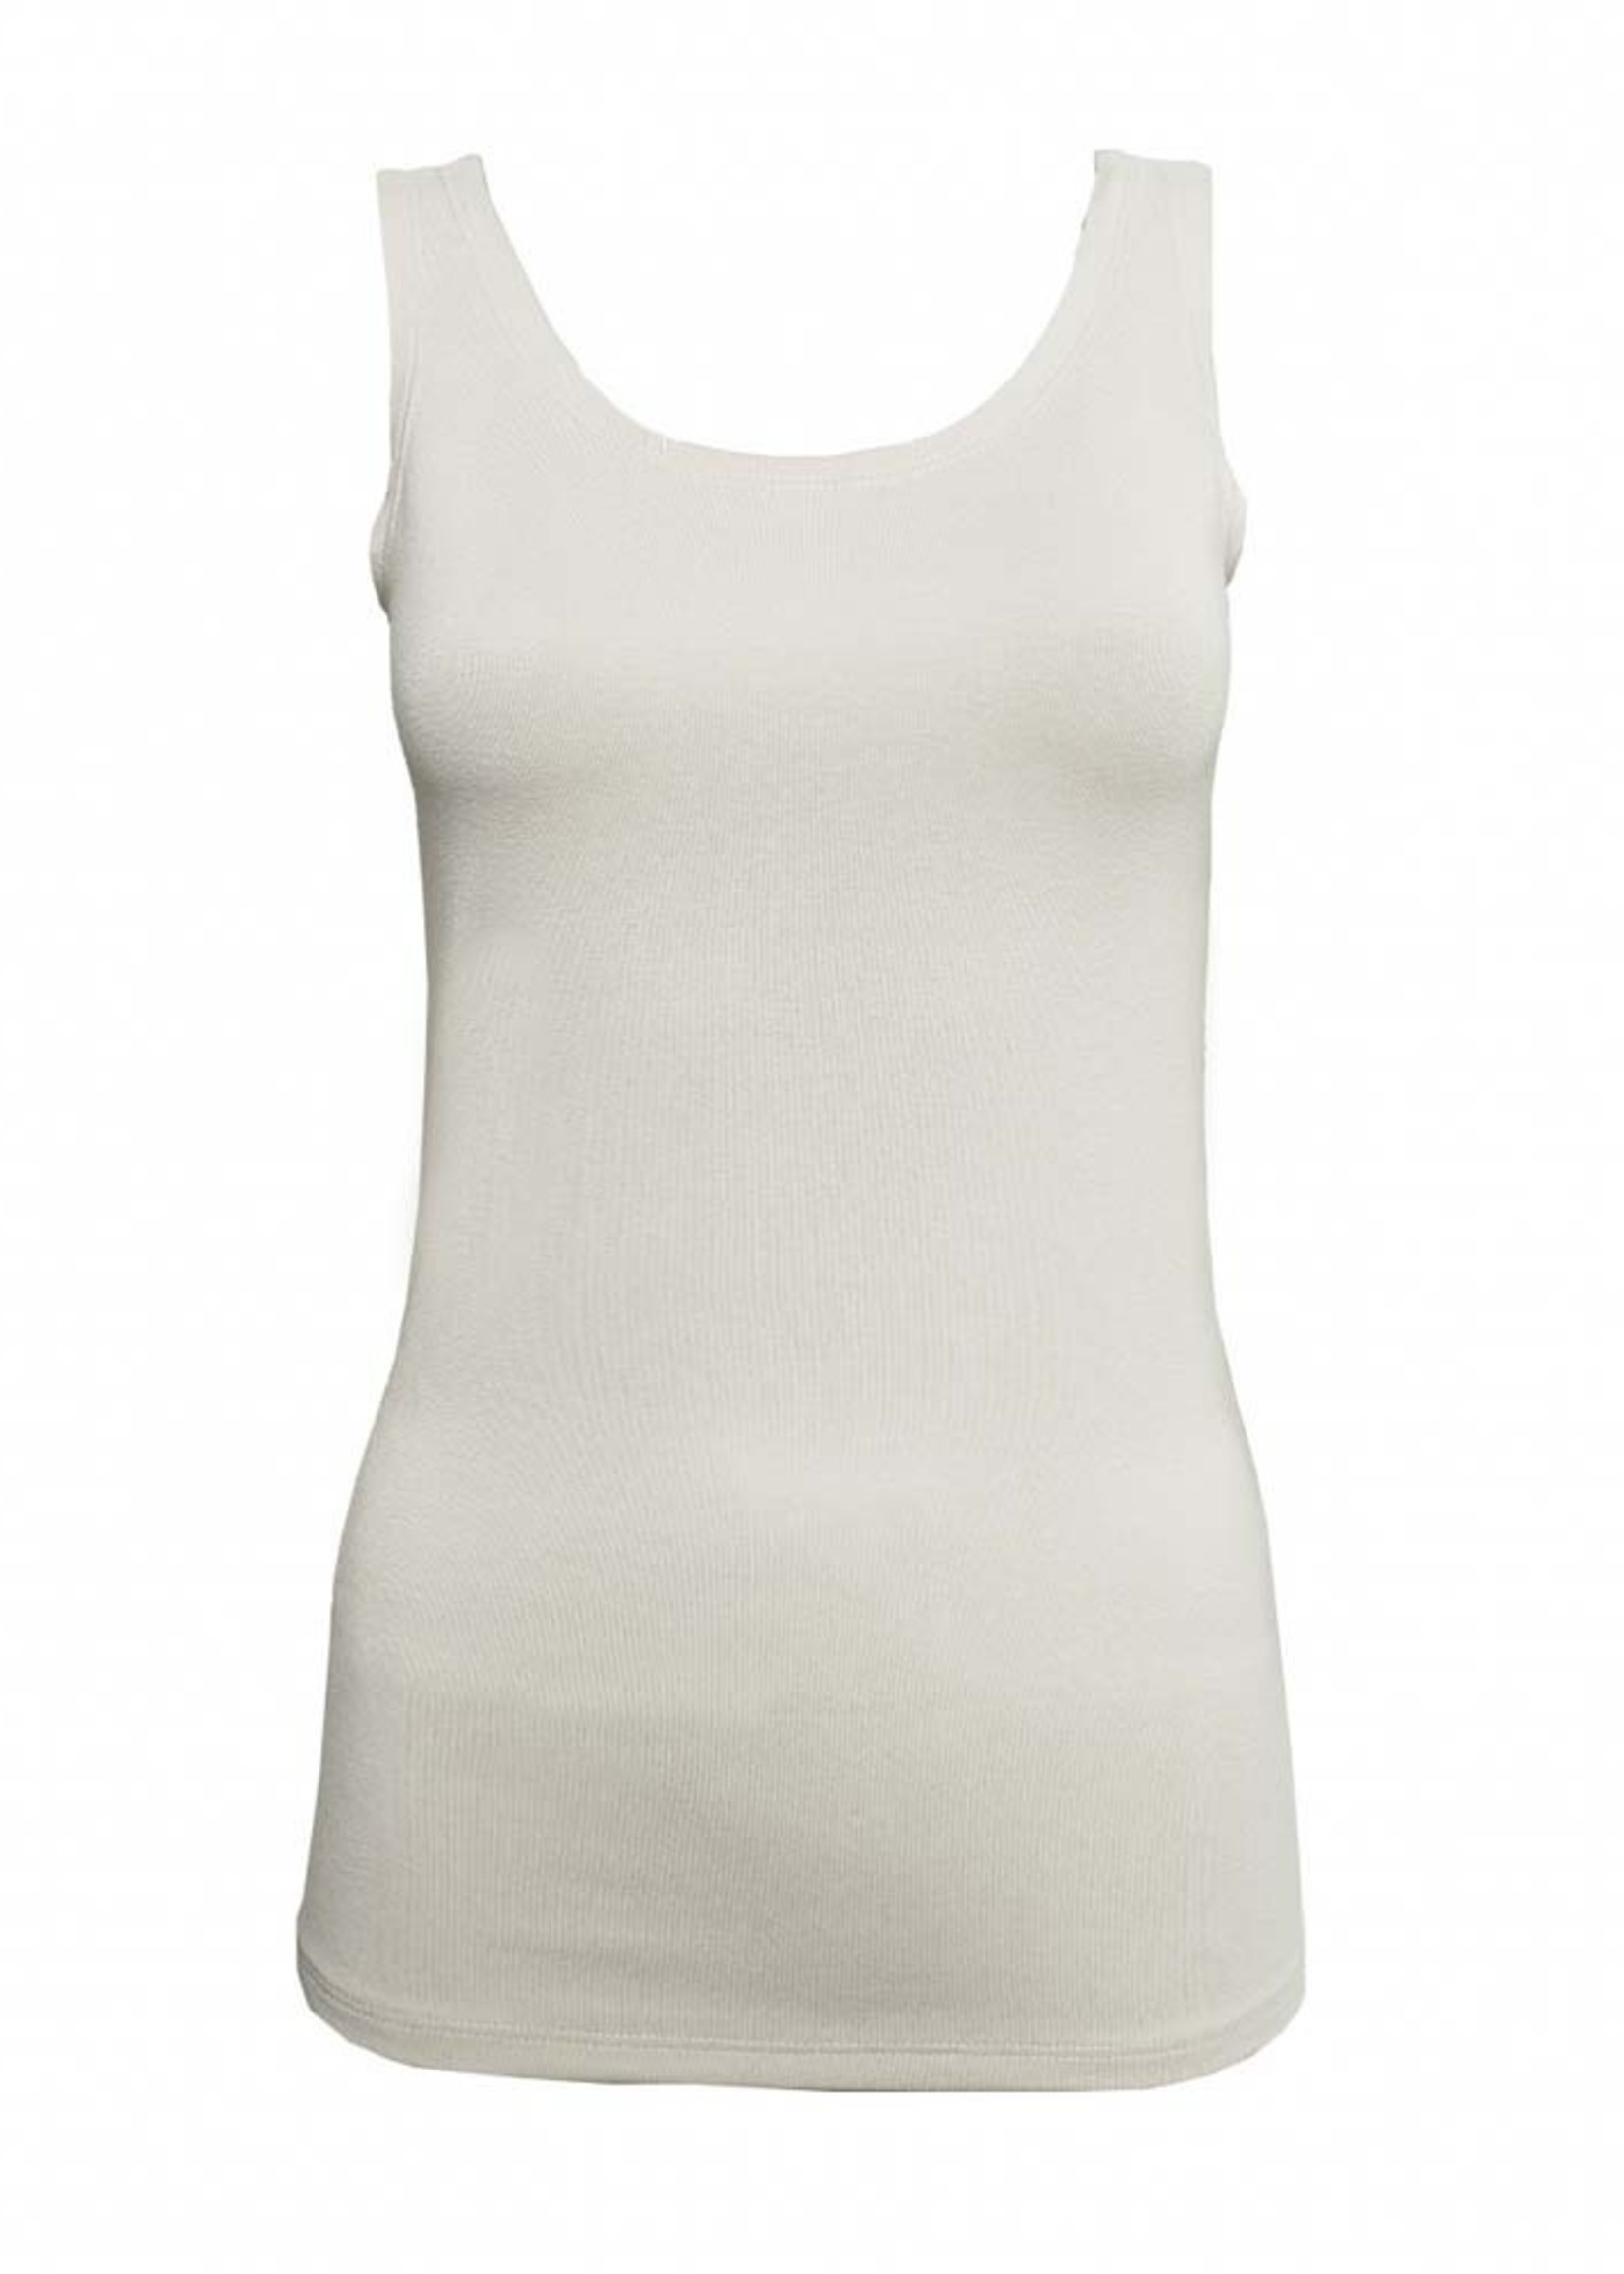 Elvira Collections Elvira Collections Ying Basic Top